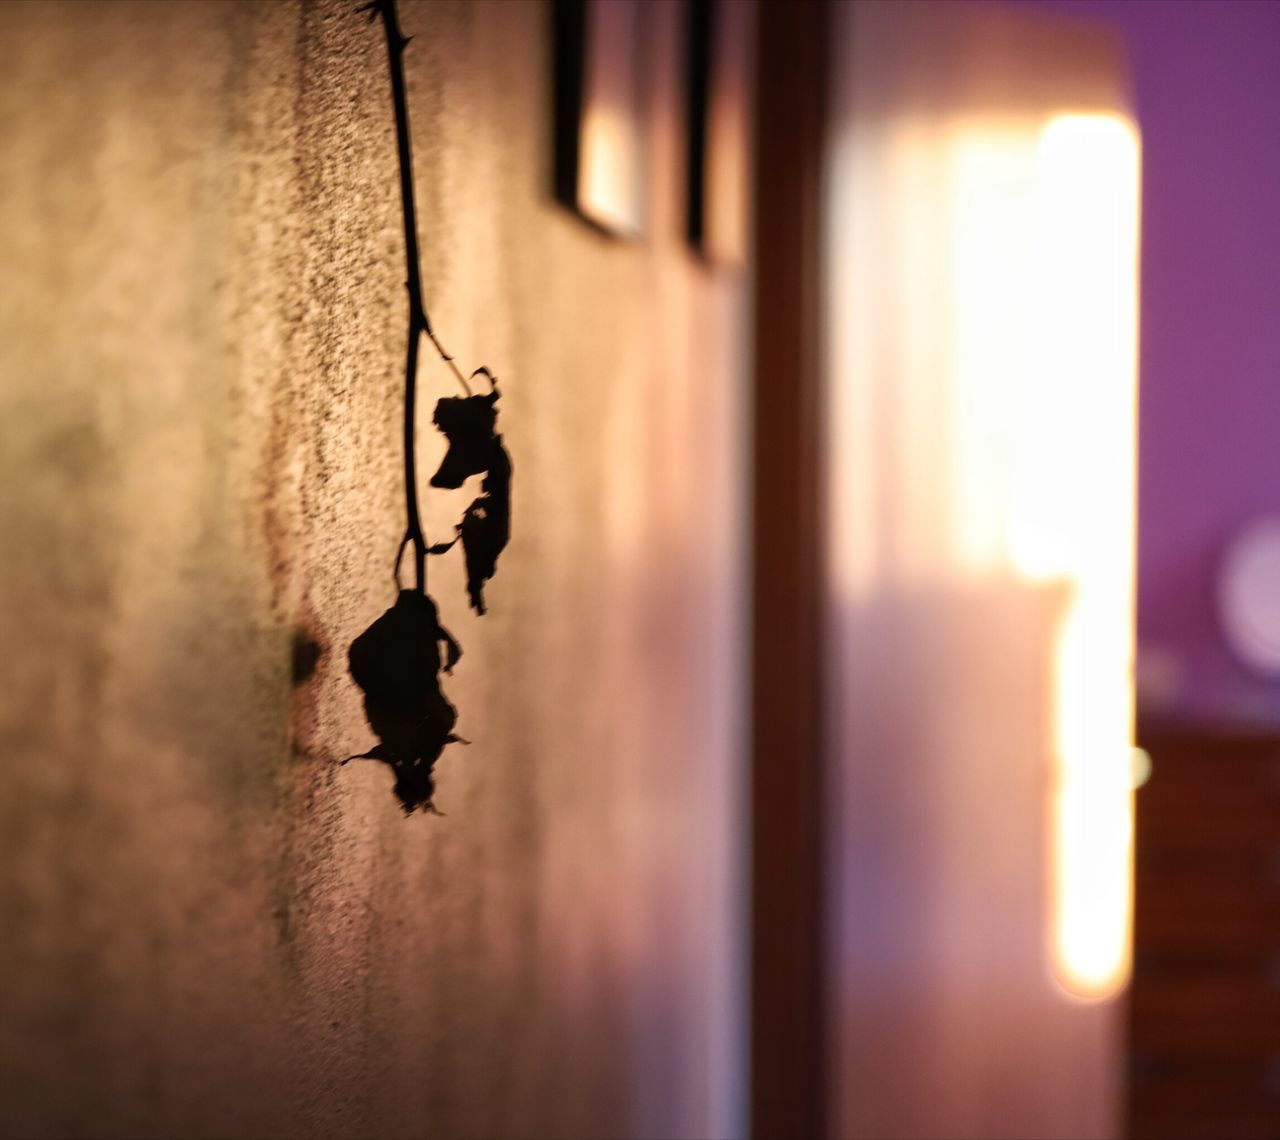 wall - building feature, selective focus, indoors, close-up, no people, hanging, architecture, built structure, focus on foreground, home interior, shadow, nature, entrance, sunlight, door, light - natural phenomenon, creativity, old, metal